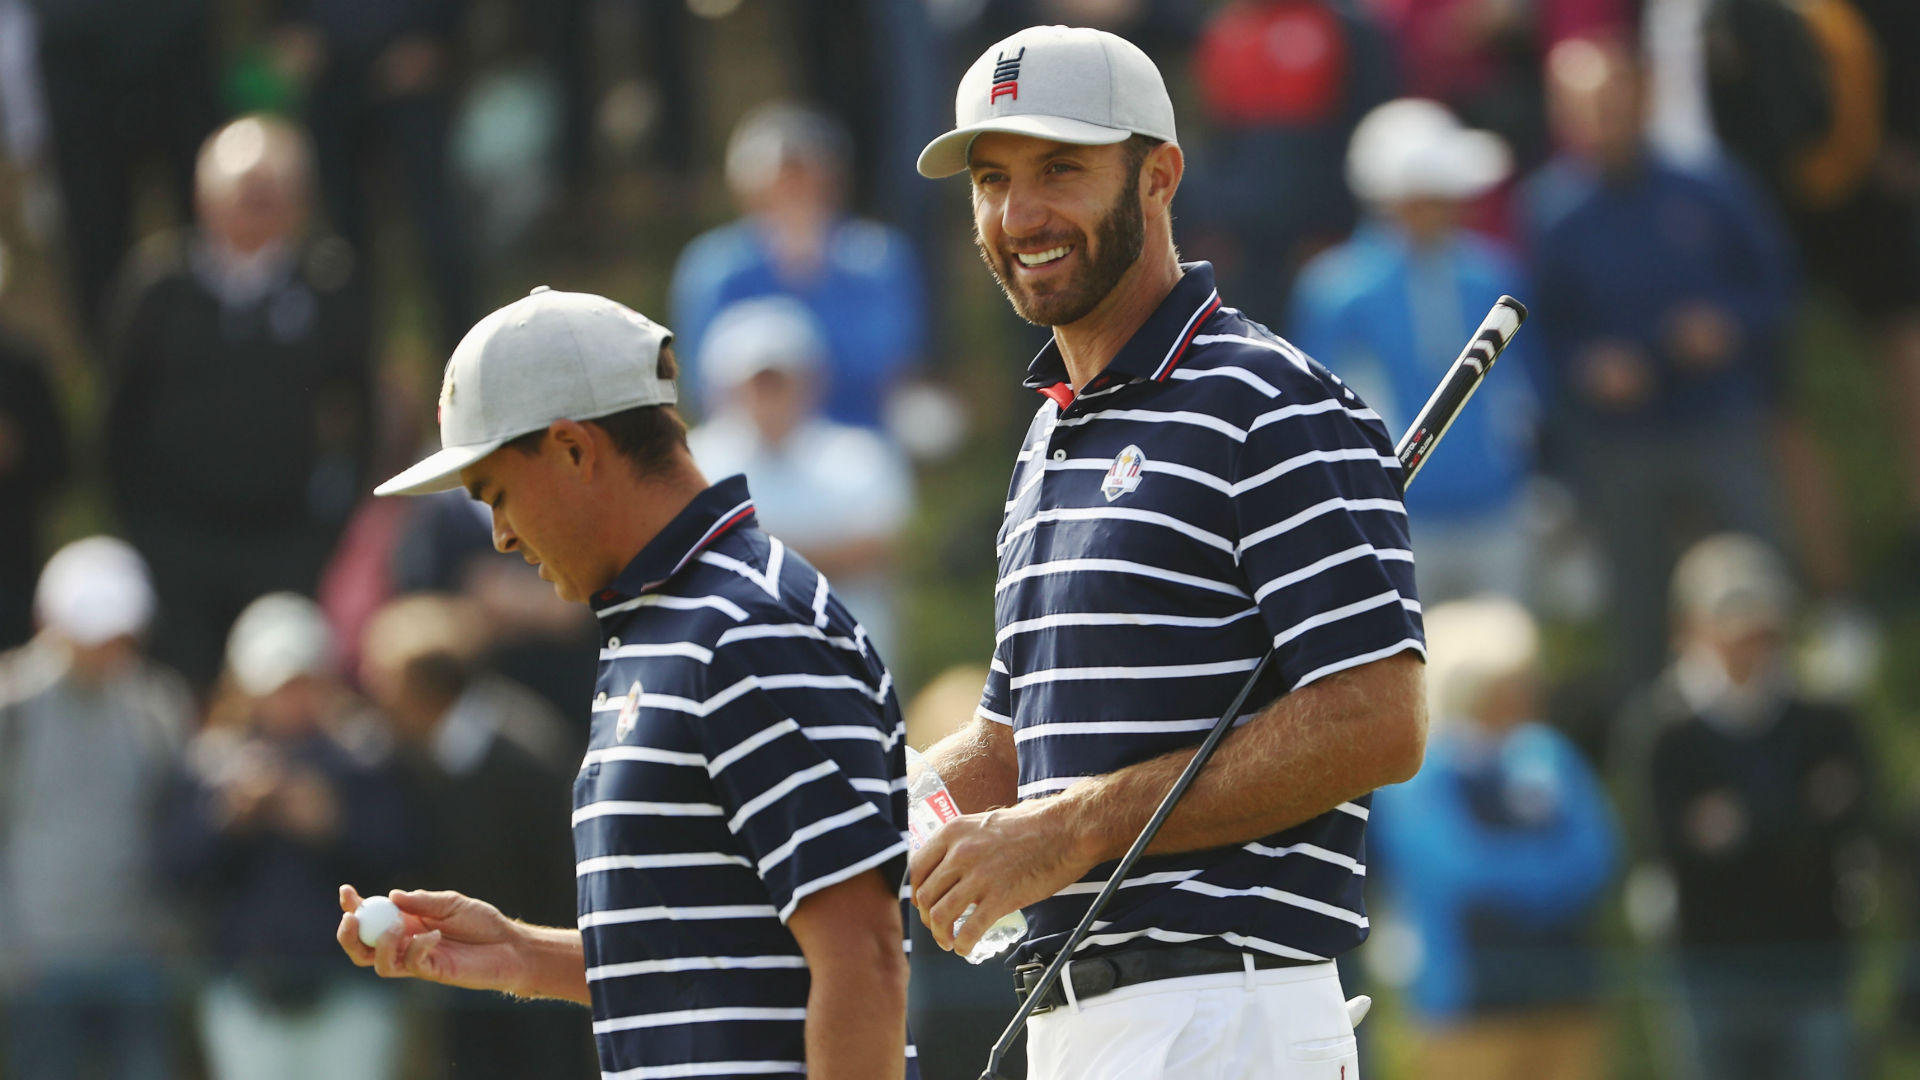 Ryder Cup 2018: Three takeaways from USA's dominant opening matches